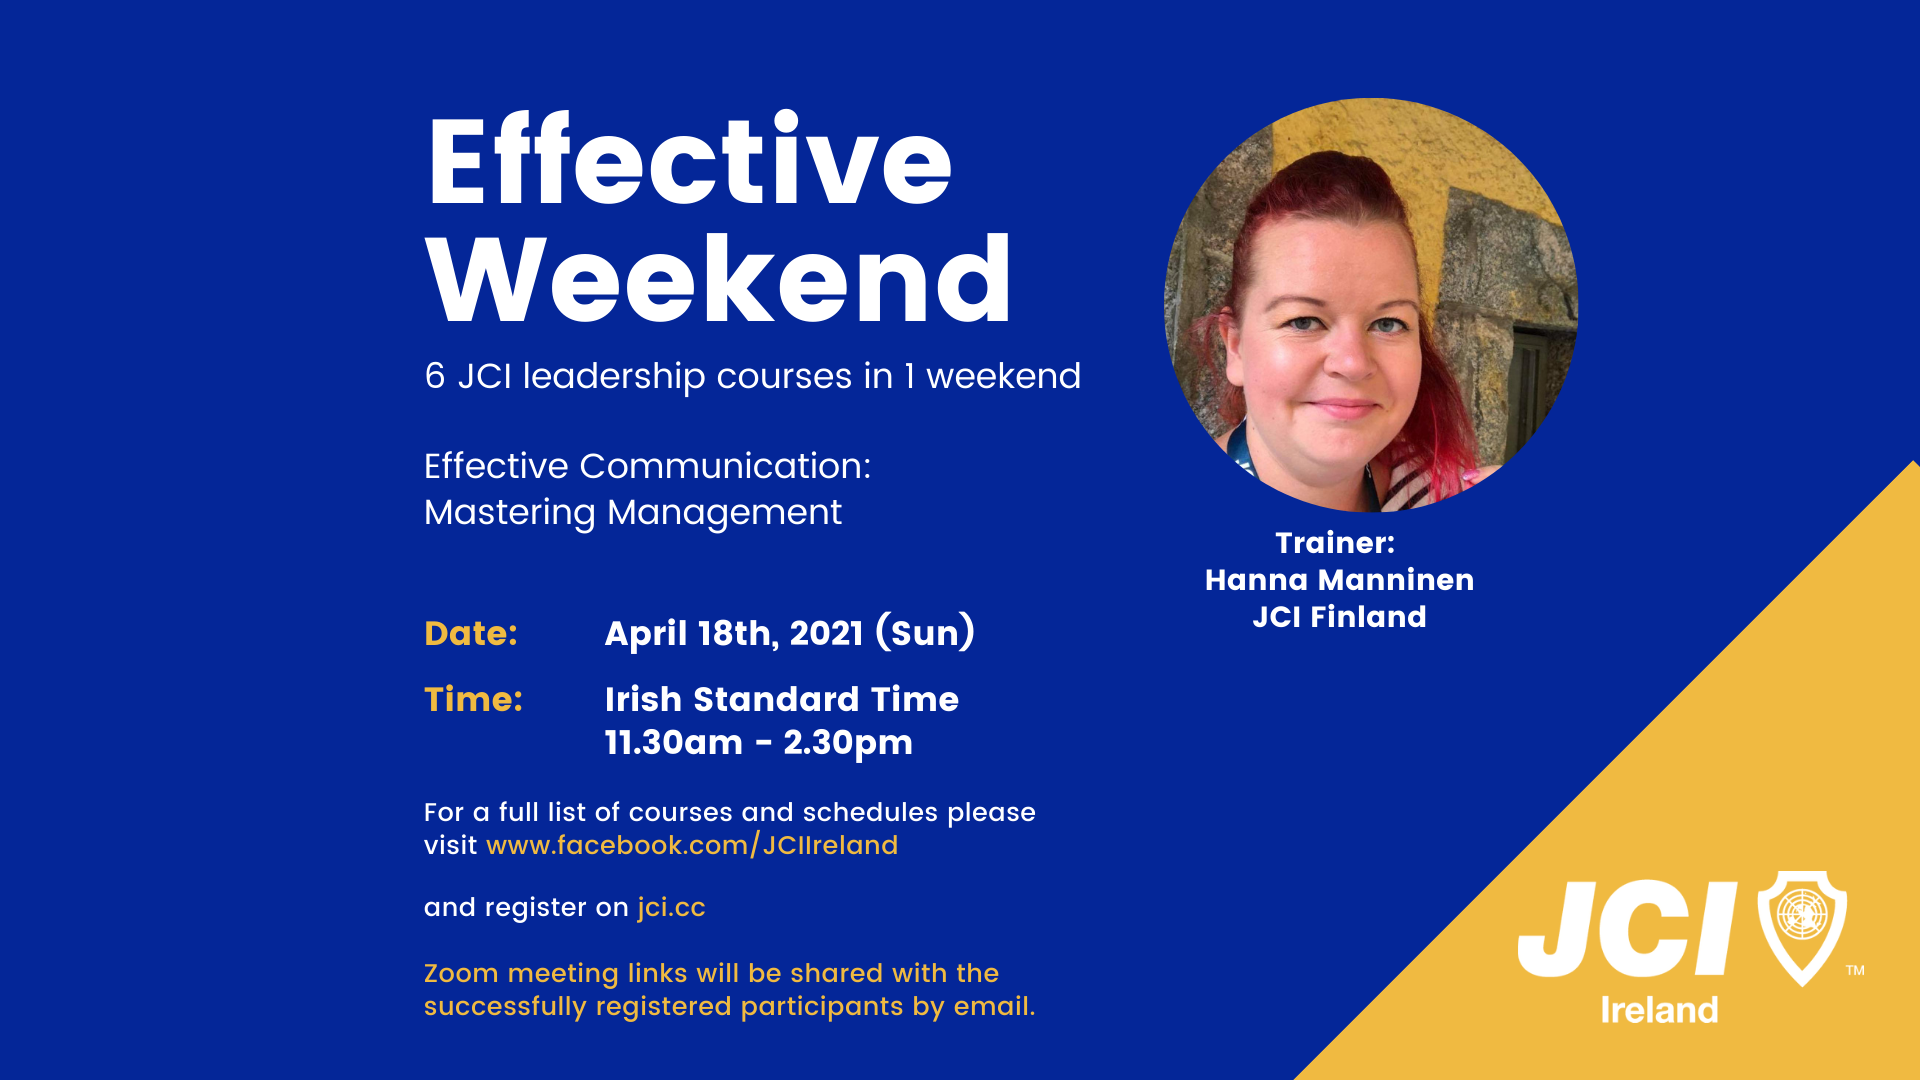 Effective Weekend 2021 - Effective Communication: Mastering Management